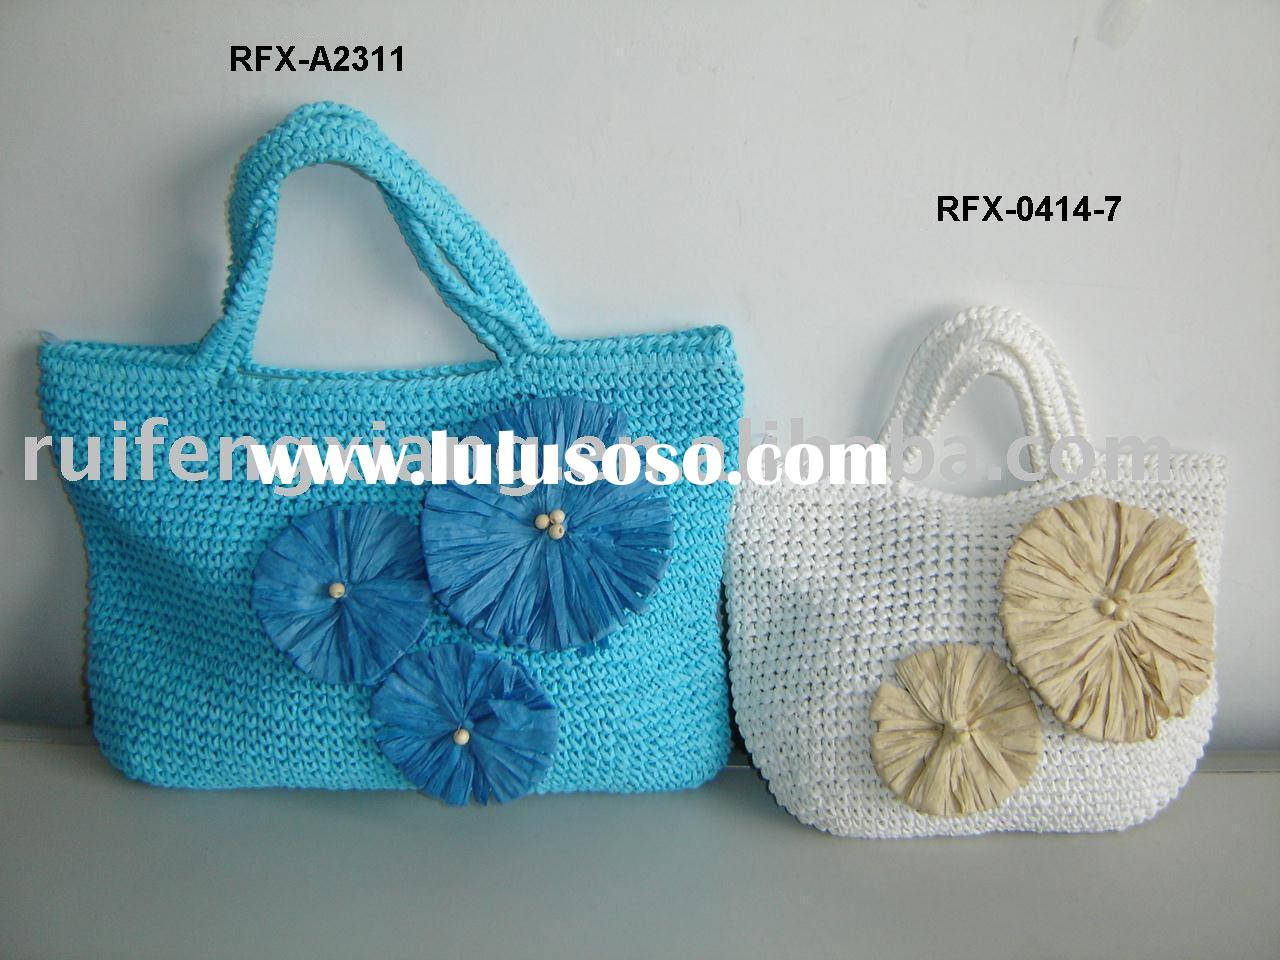 Crochet Pattern Central Bags : BAG CROCHET PATTERN PLASTIC Crochet Patterns